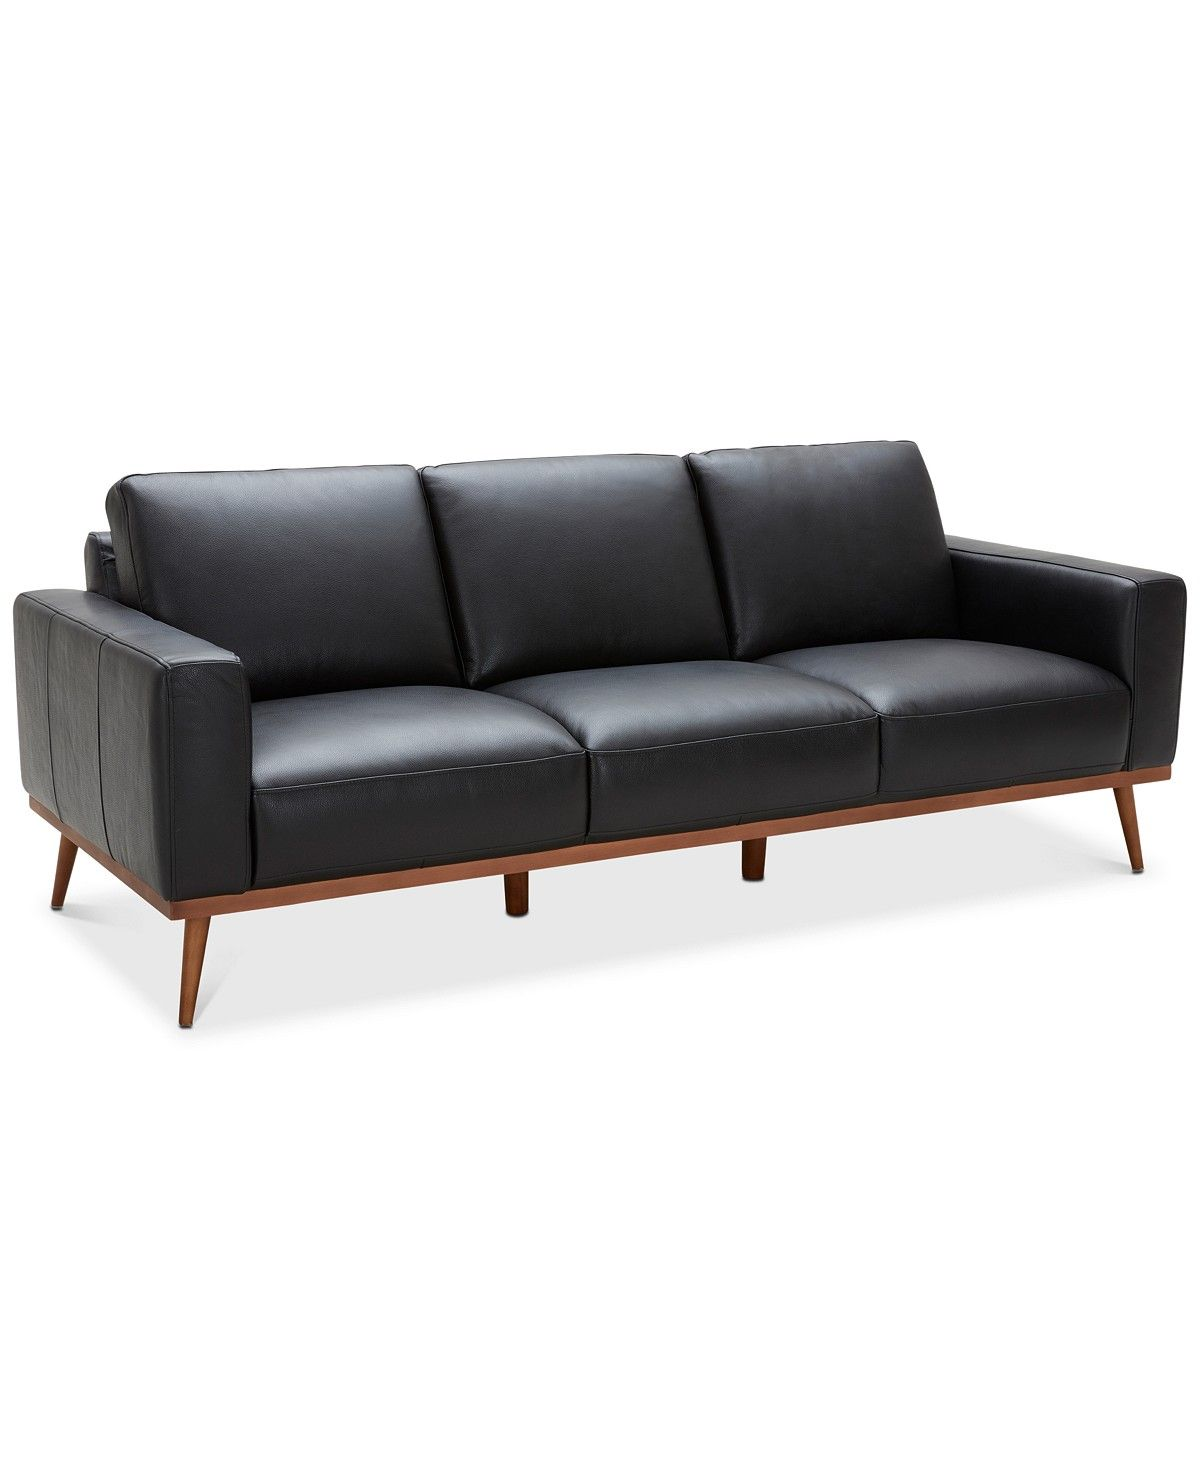 Genuine Leather Sectional Sofa Canada: Leather Sofa Set Clearance Leather Sofas Clearance Unique